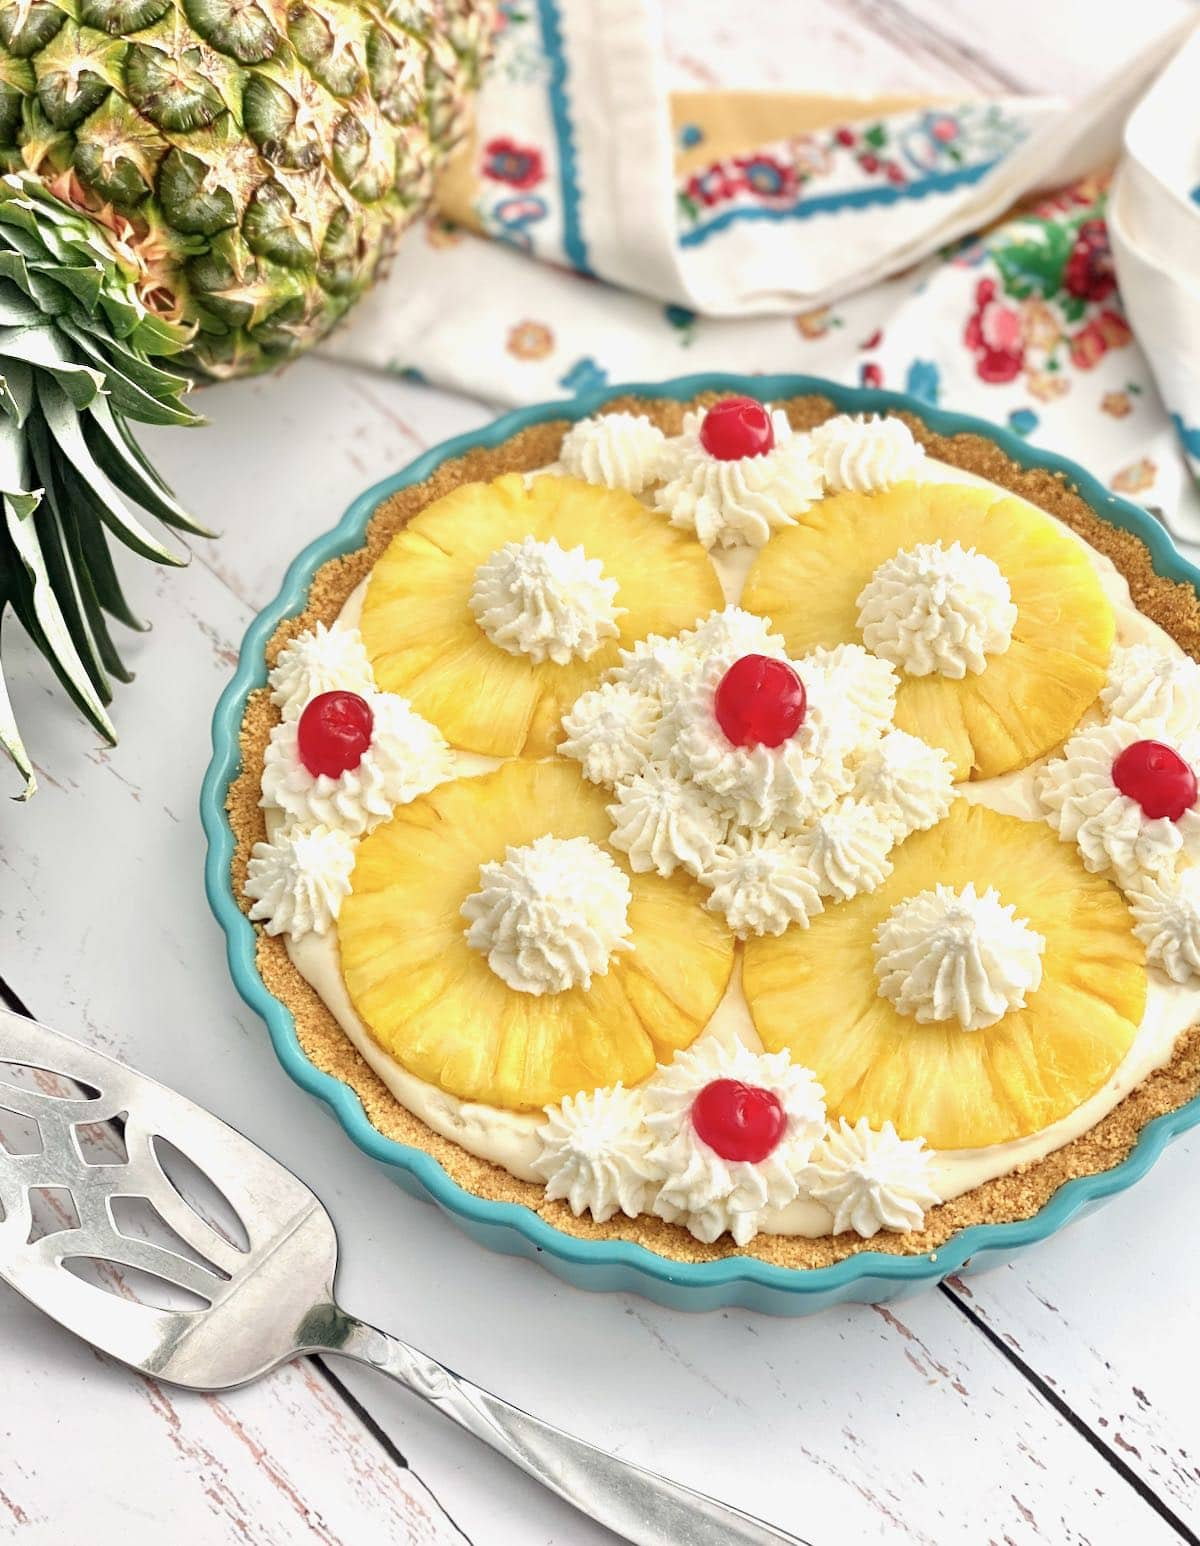 pineapple pie in a blue pie plate on a white washed background.